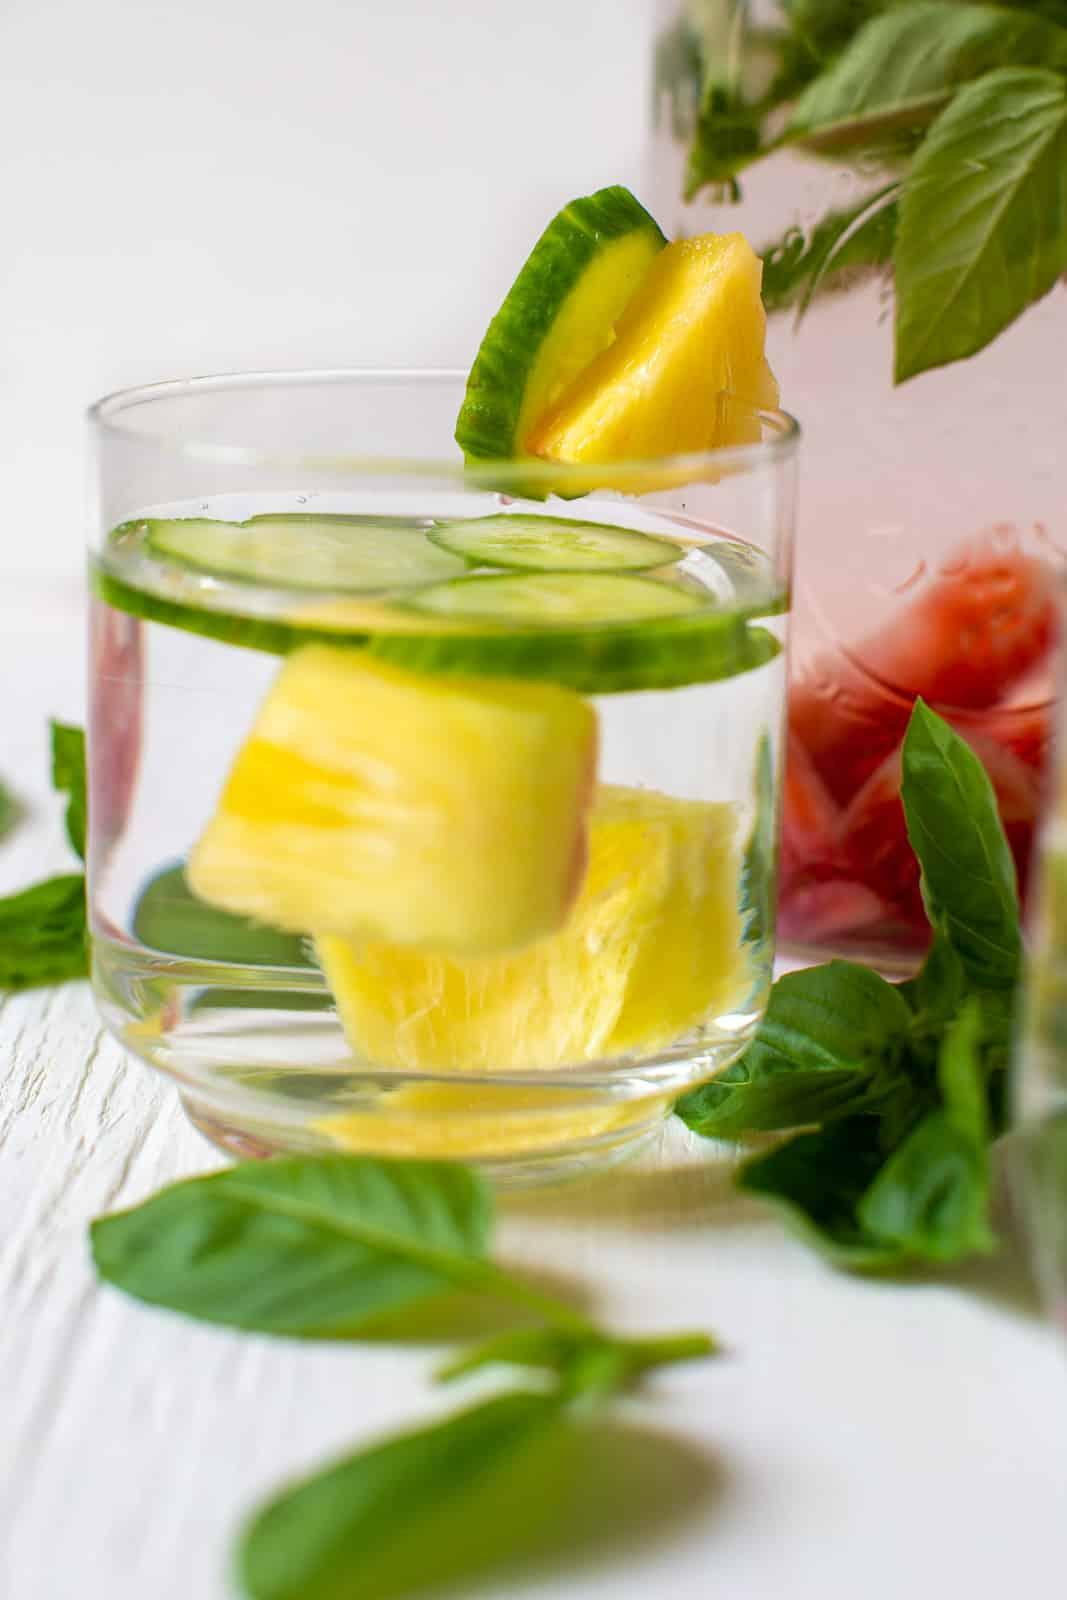 photo of glasses of pineapple cucumber infused water